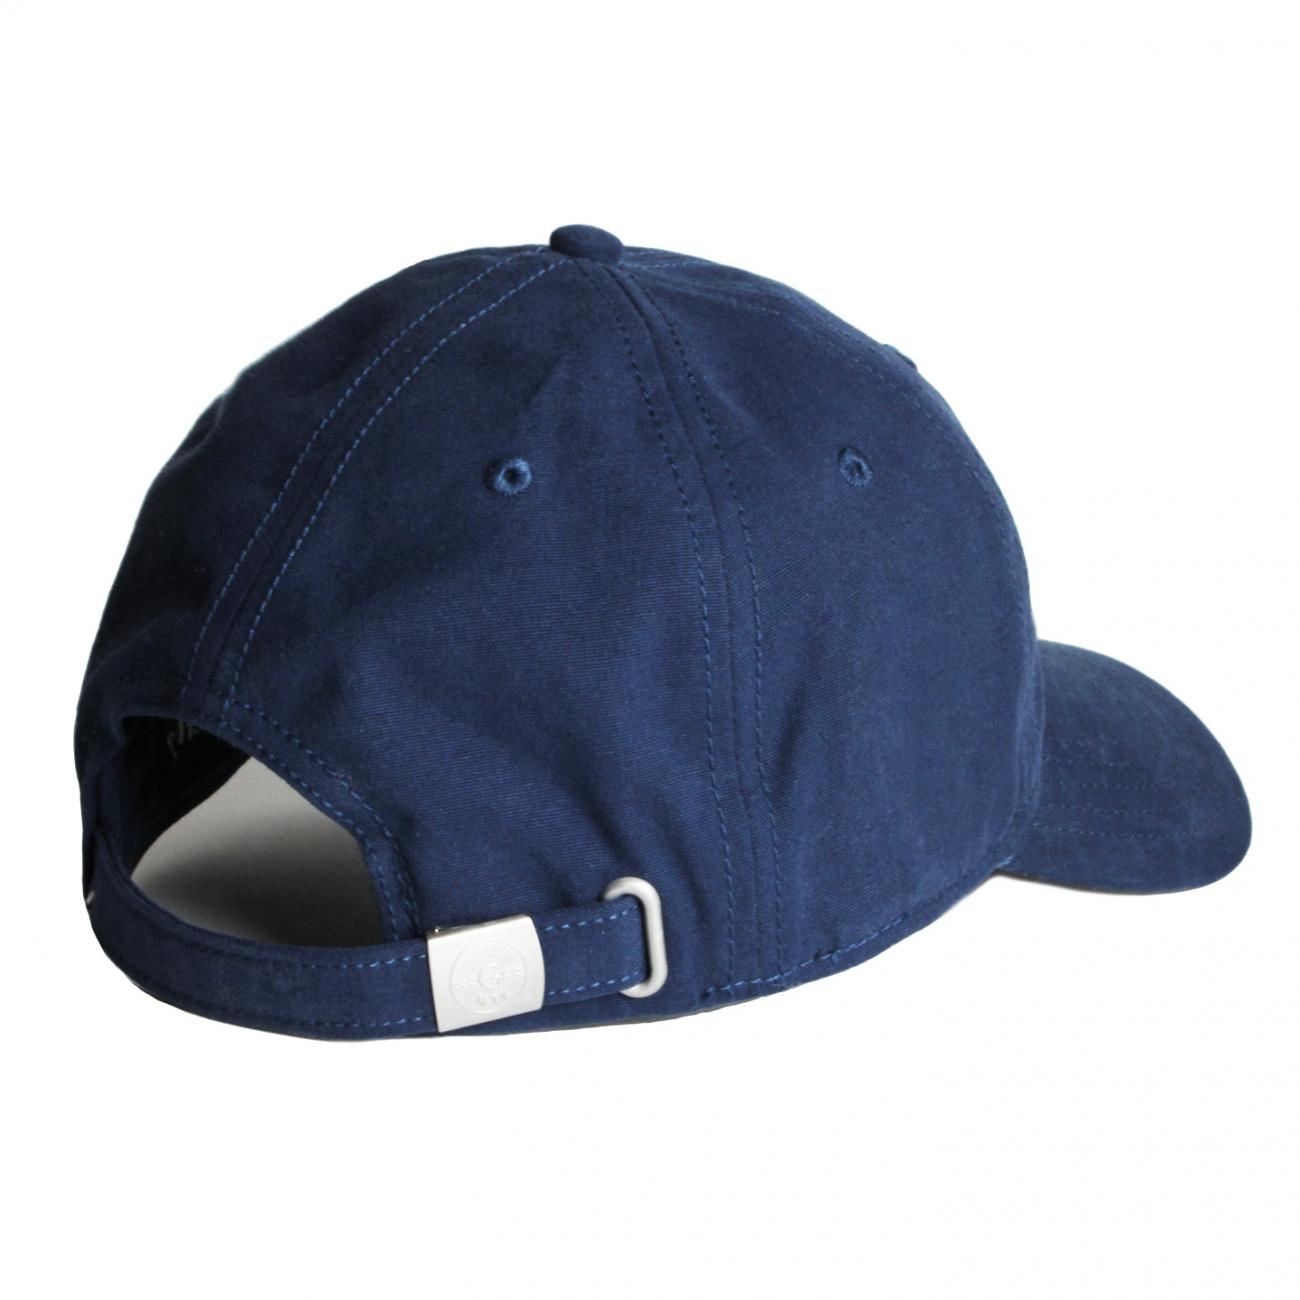 Gurney's Hats Embroidered back navy